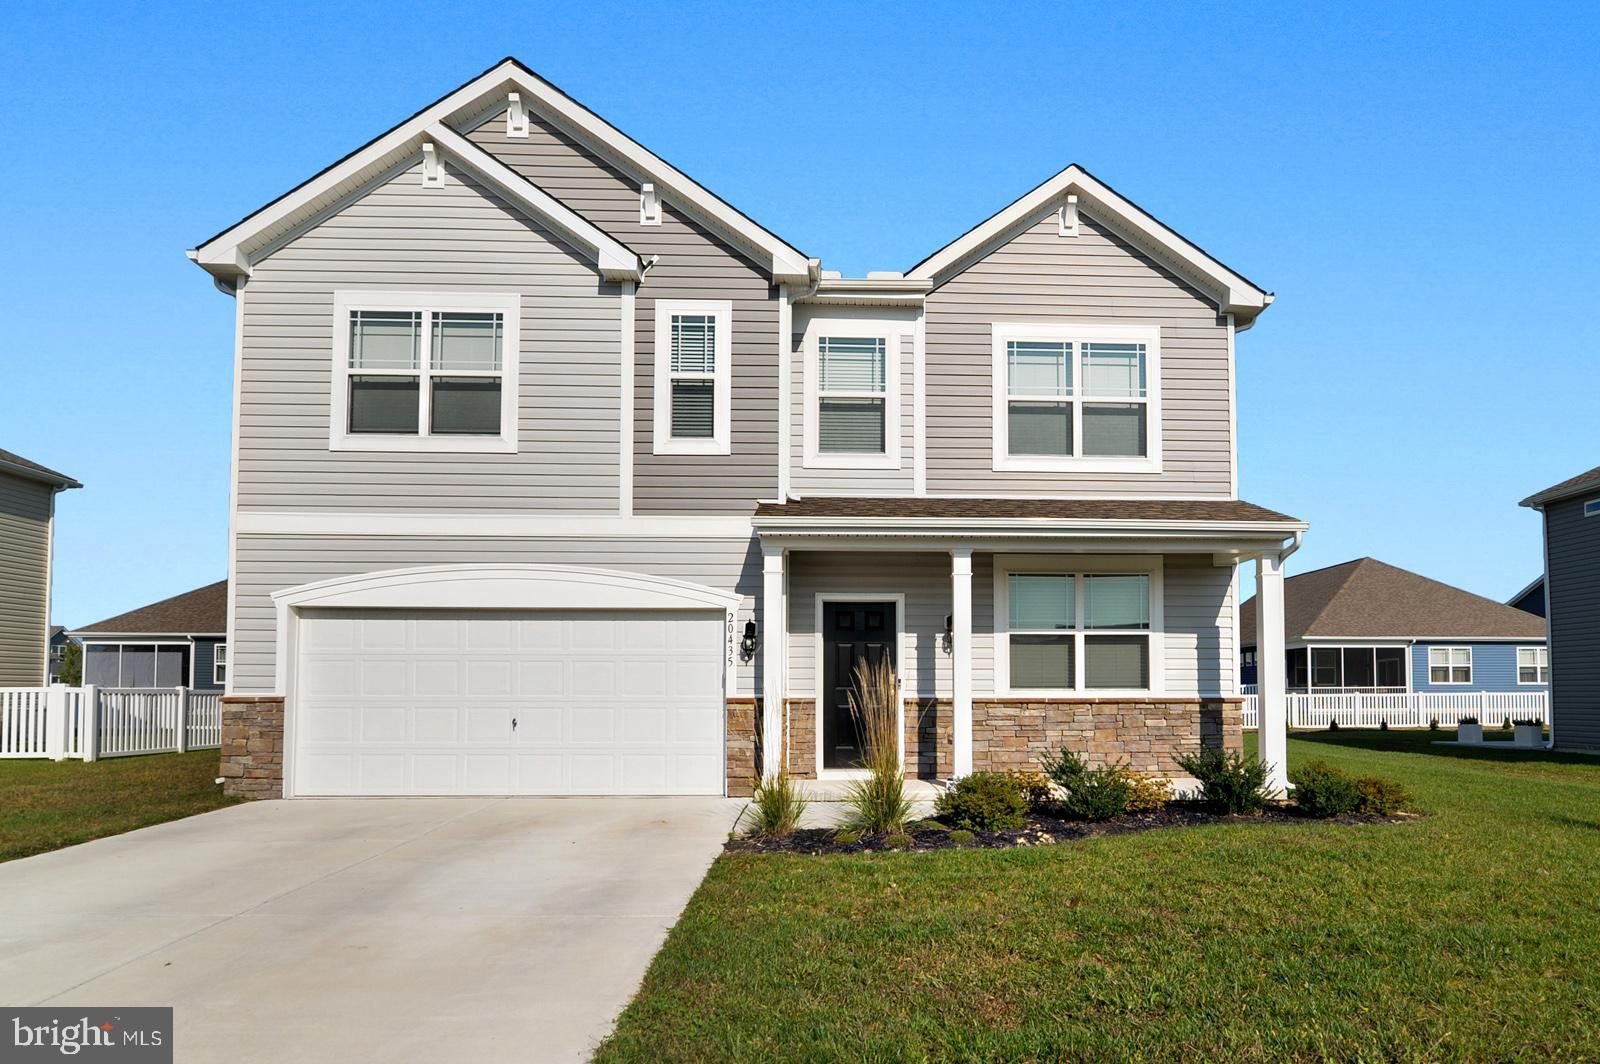 R-11617  Why wait for new construction when this 1.5 year old move in ready home shows like a builde